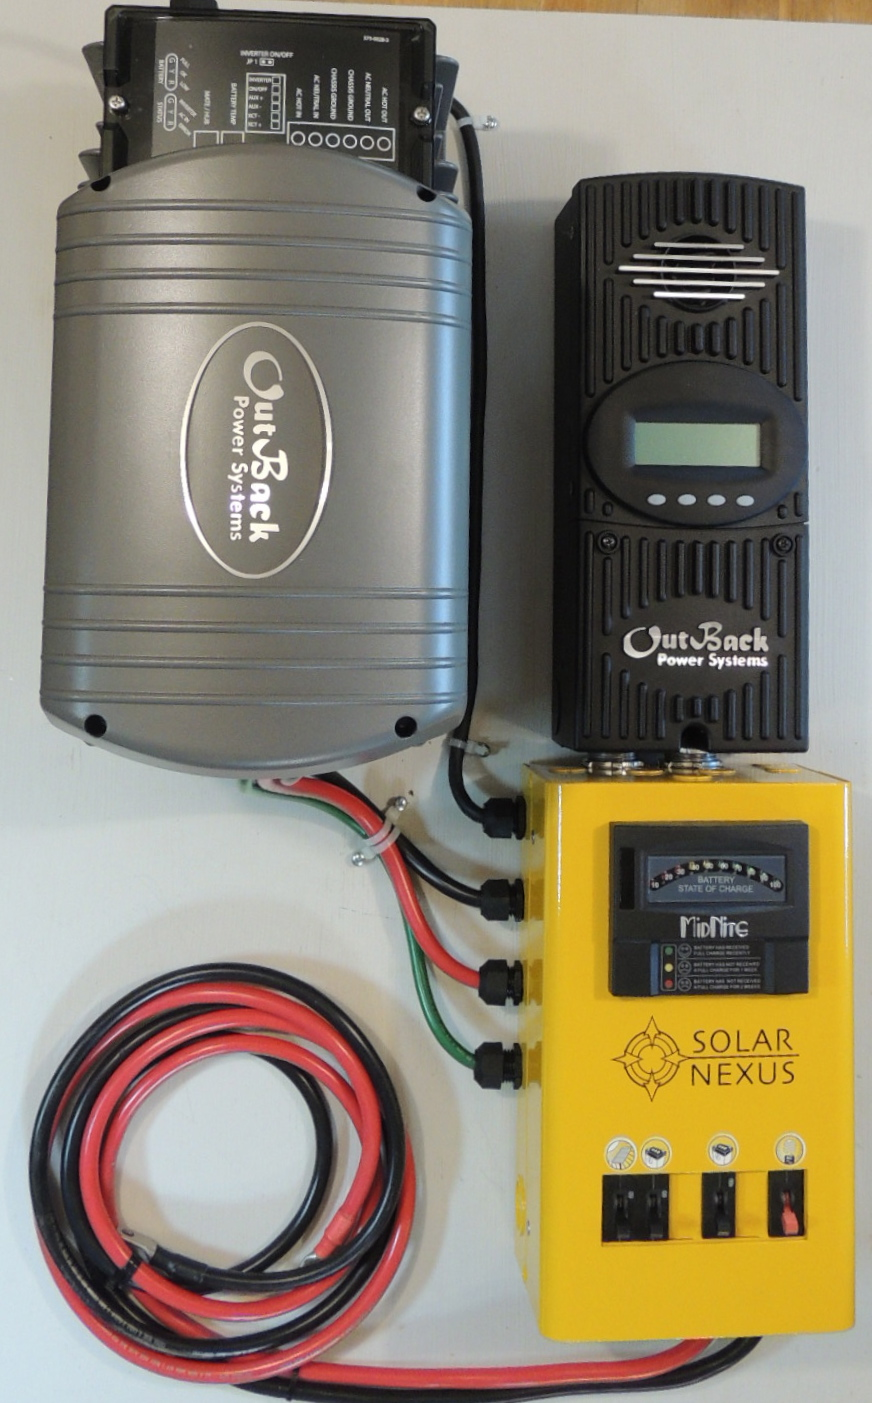 Solnexus Energy Systems Wiring Solar Inverter To Breaker Box Mnpc W Fm60 Gfx